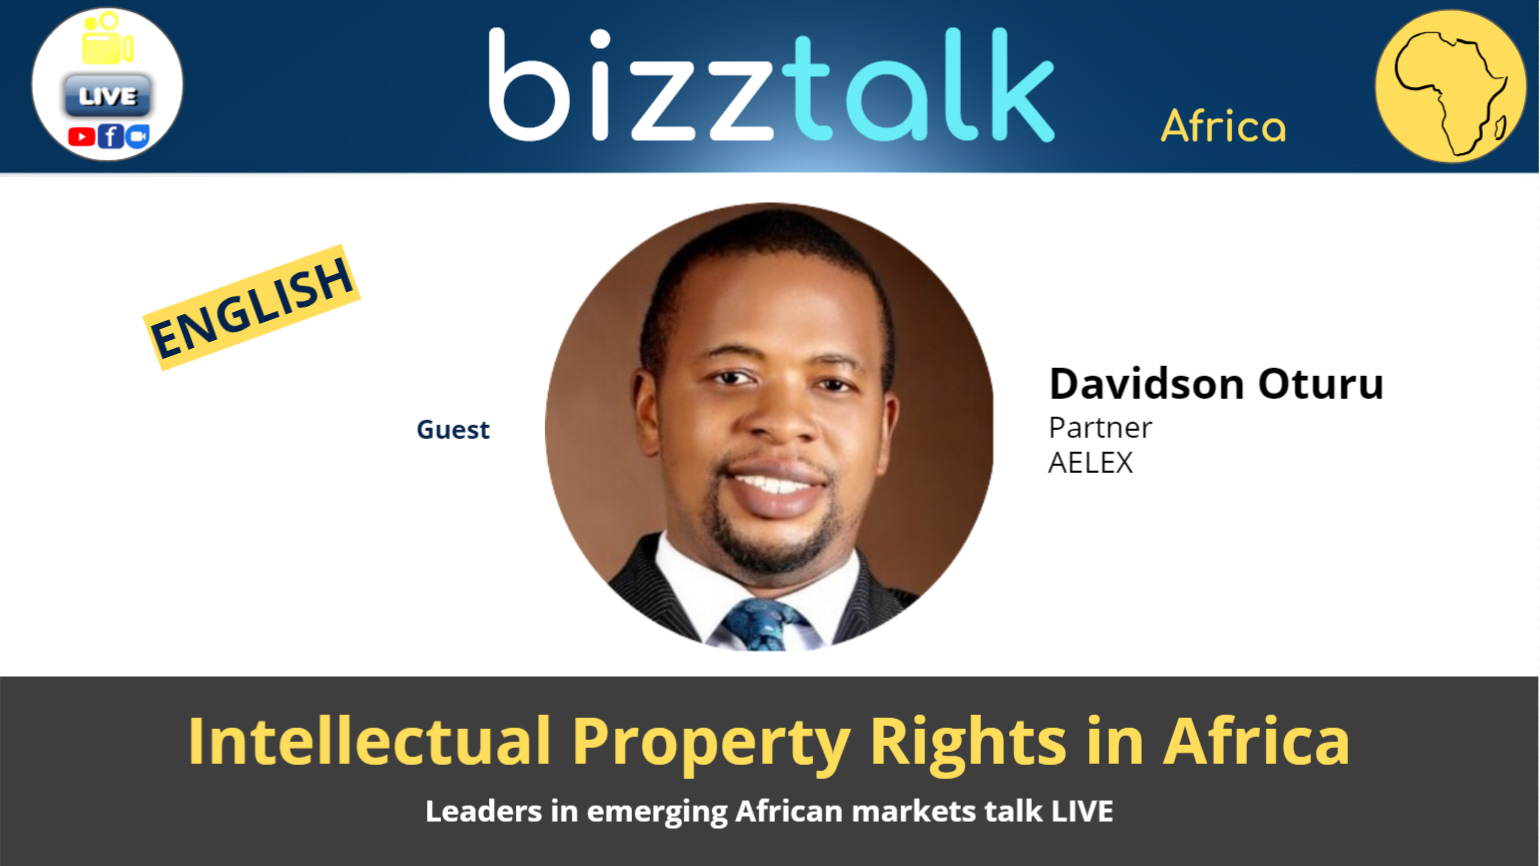 Intellectual Property Rights in Africa